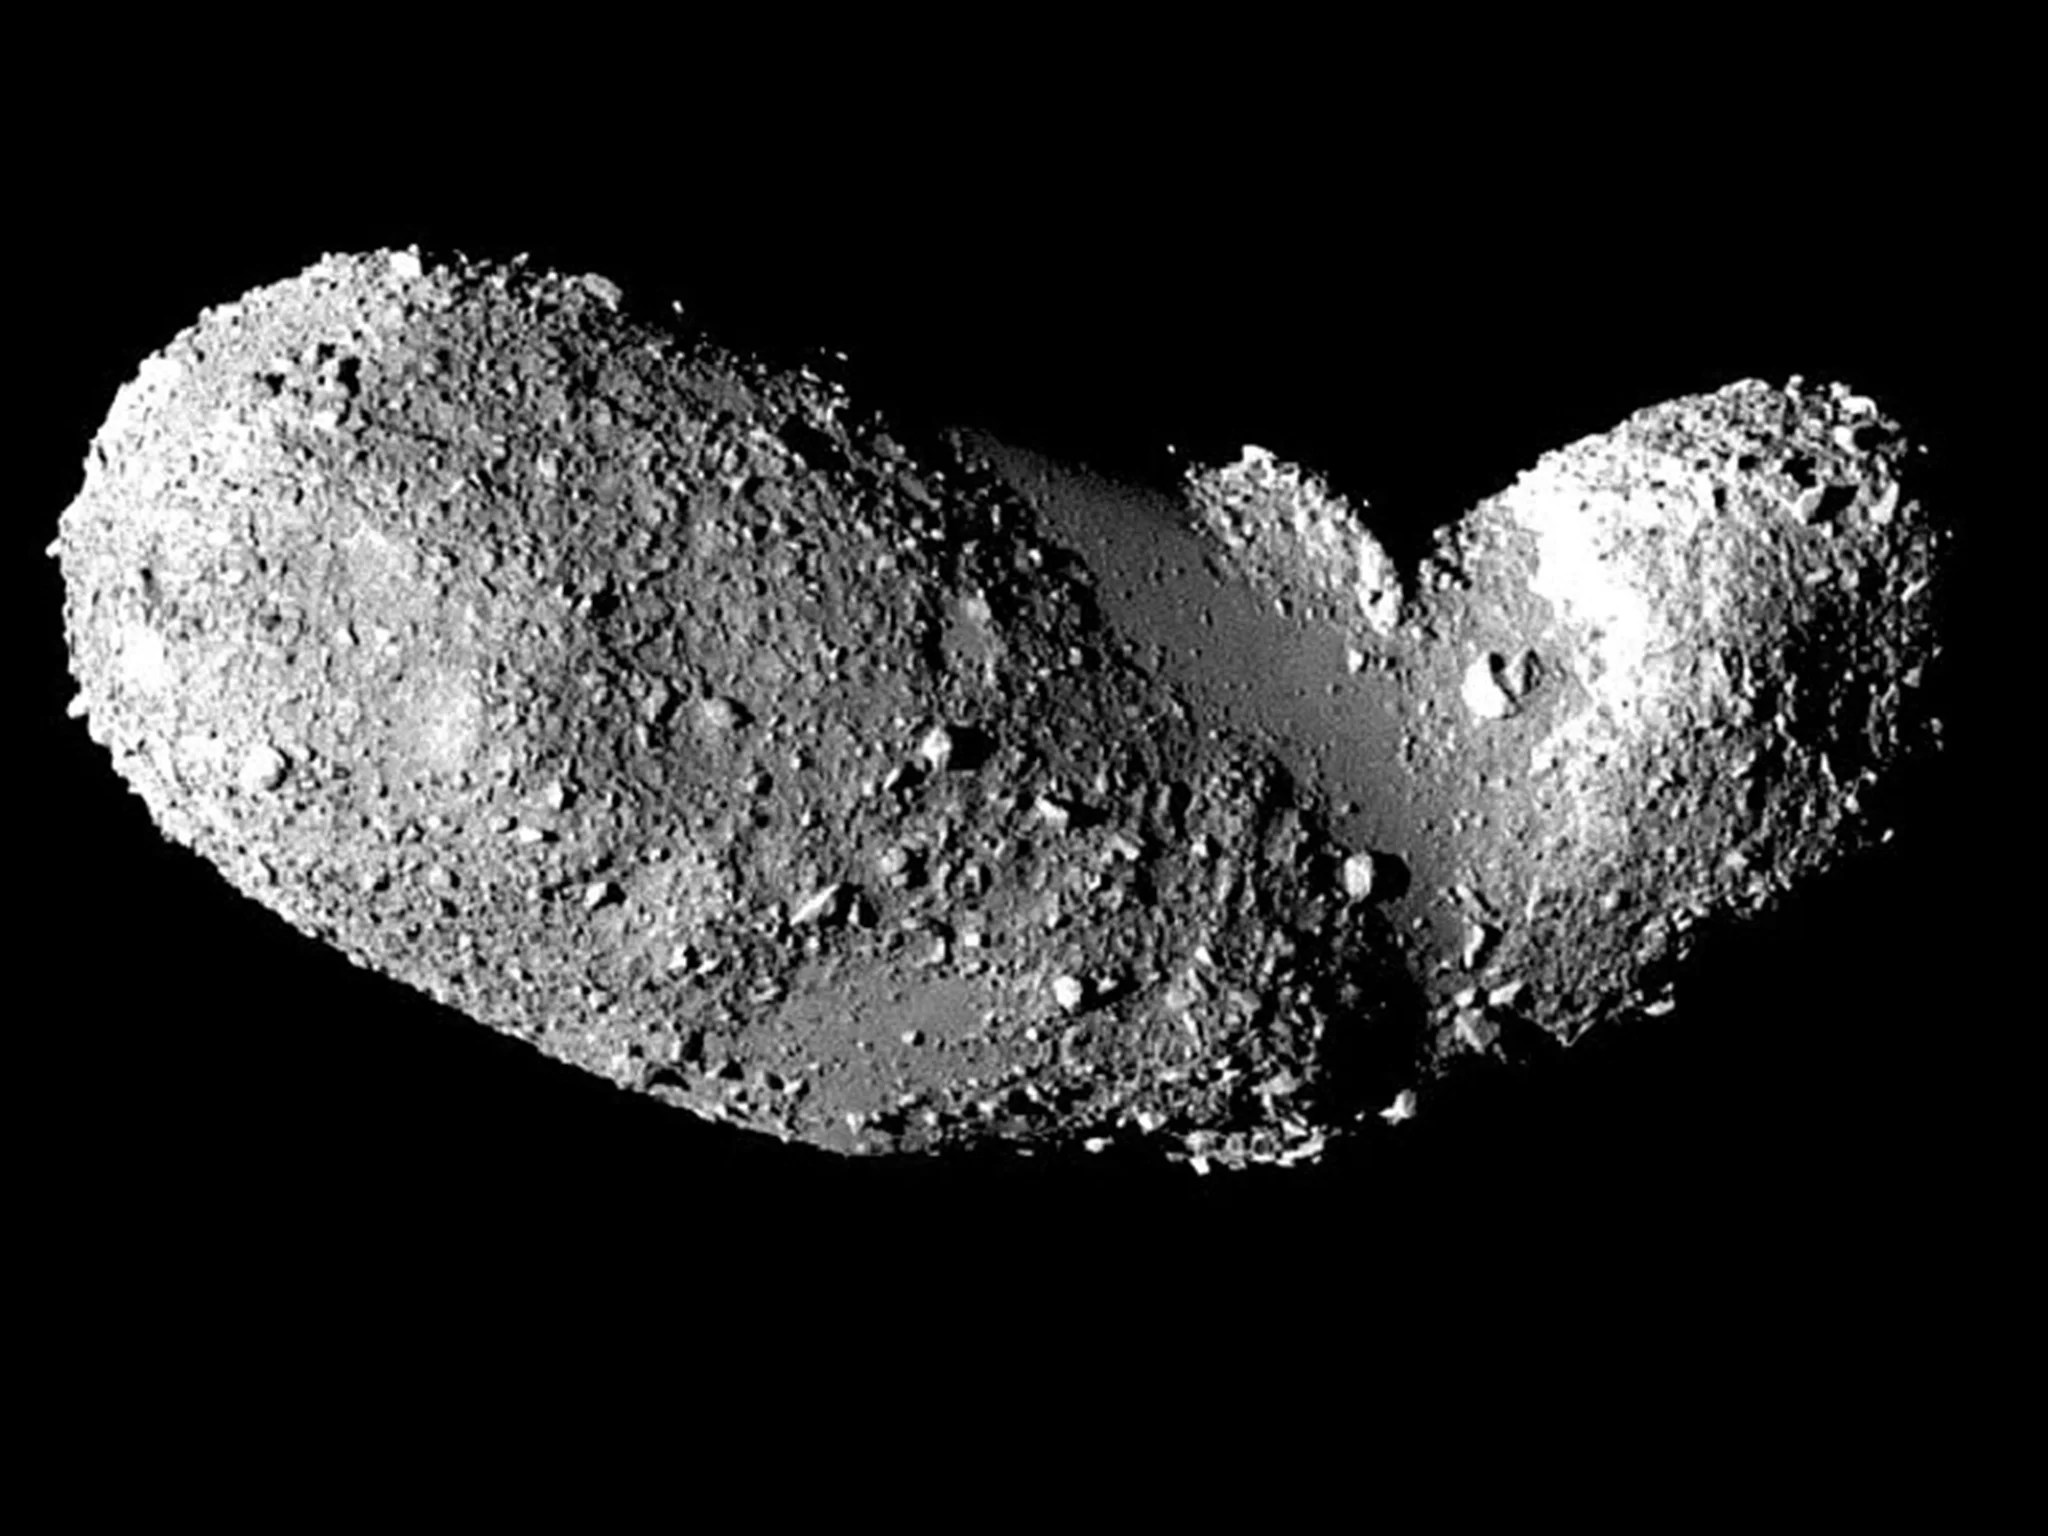 Scientists shocked water and organic matter found on an asteroid for the first time